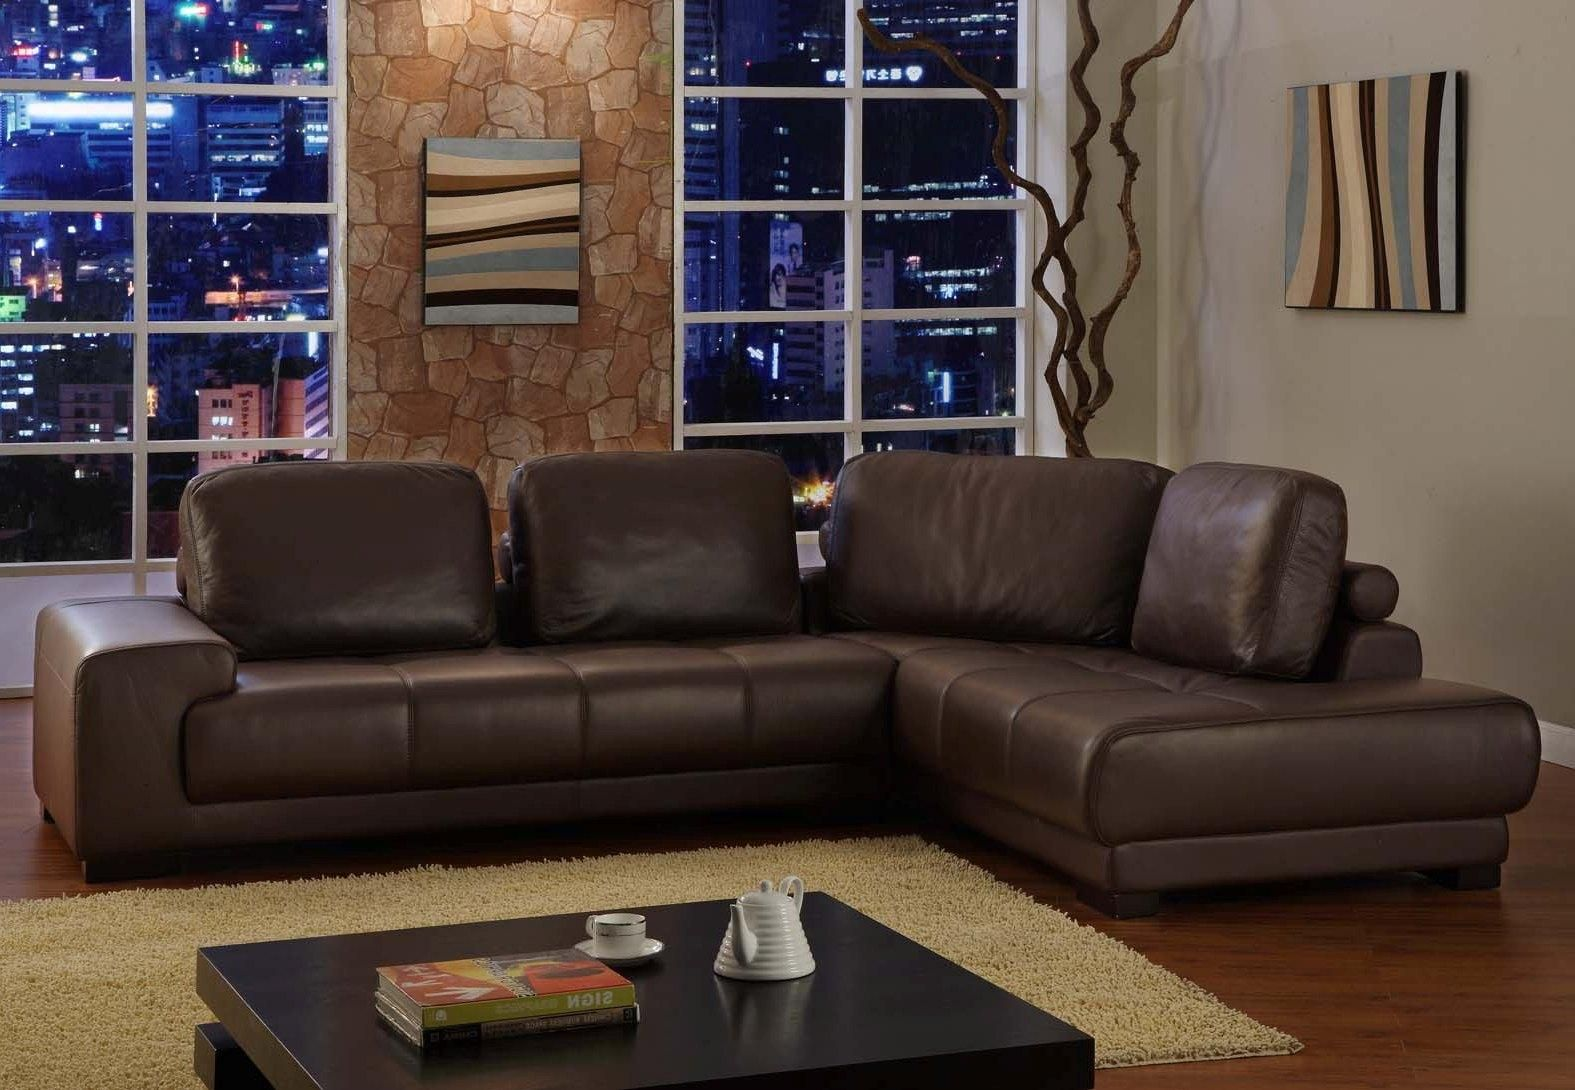 Sectional Sofa Clearance the Best Way to get High Quality Sofa in Affordable Price : quality leather sectionals - Sectionals, Sofas & Couches